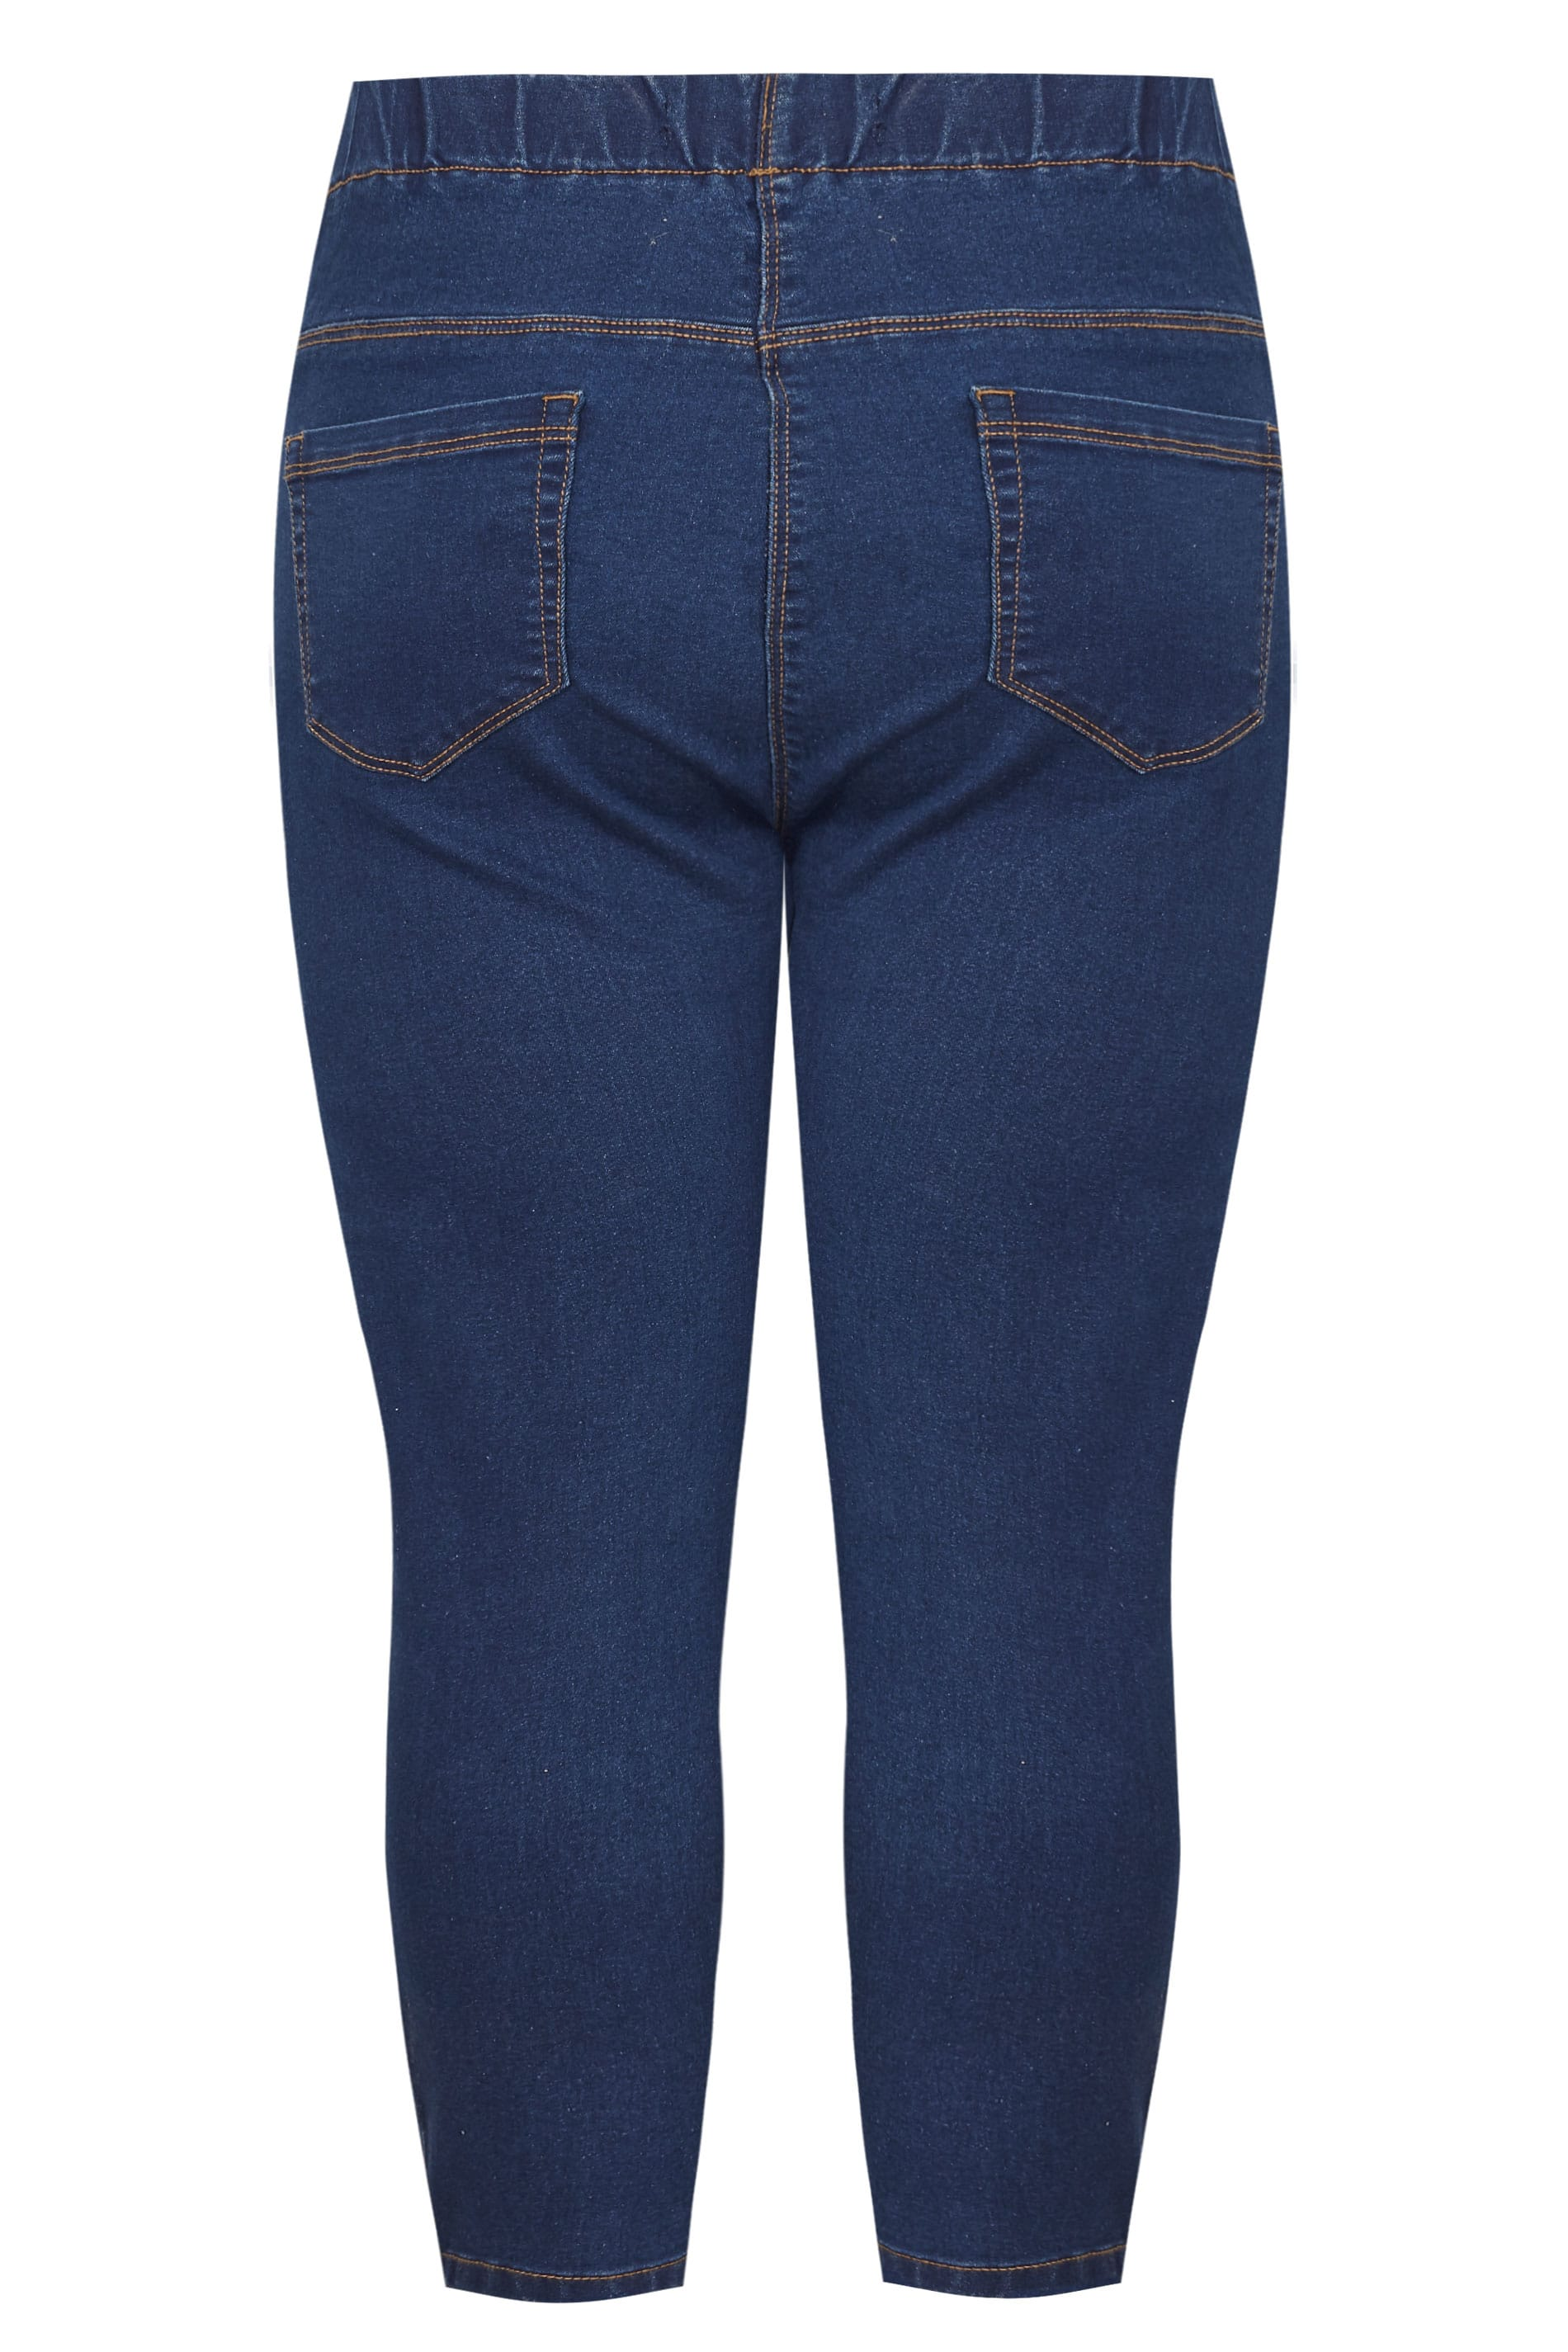 Yours-Clothing-Women-039-s-Plus-Size-Blue-Cropped-Jenny-Jeggings miniatuur 4